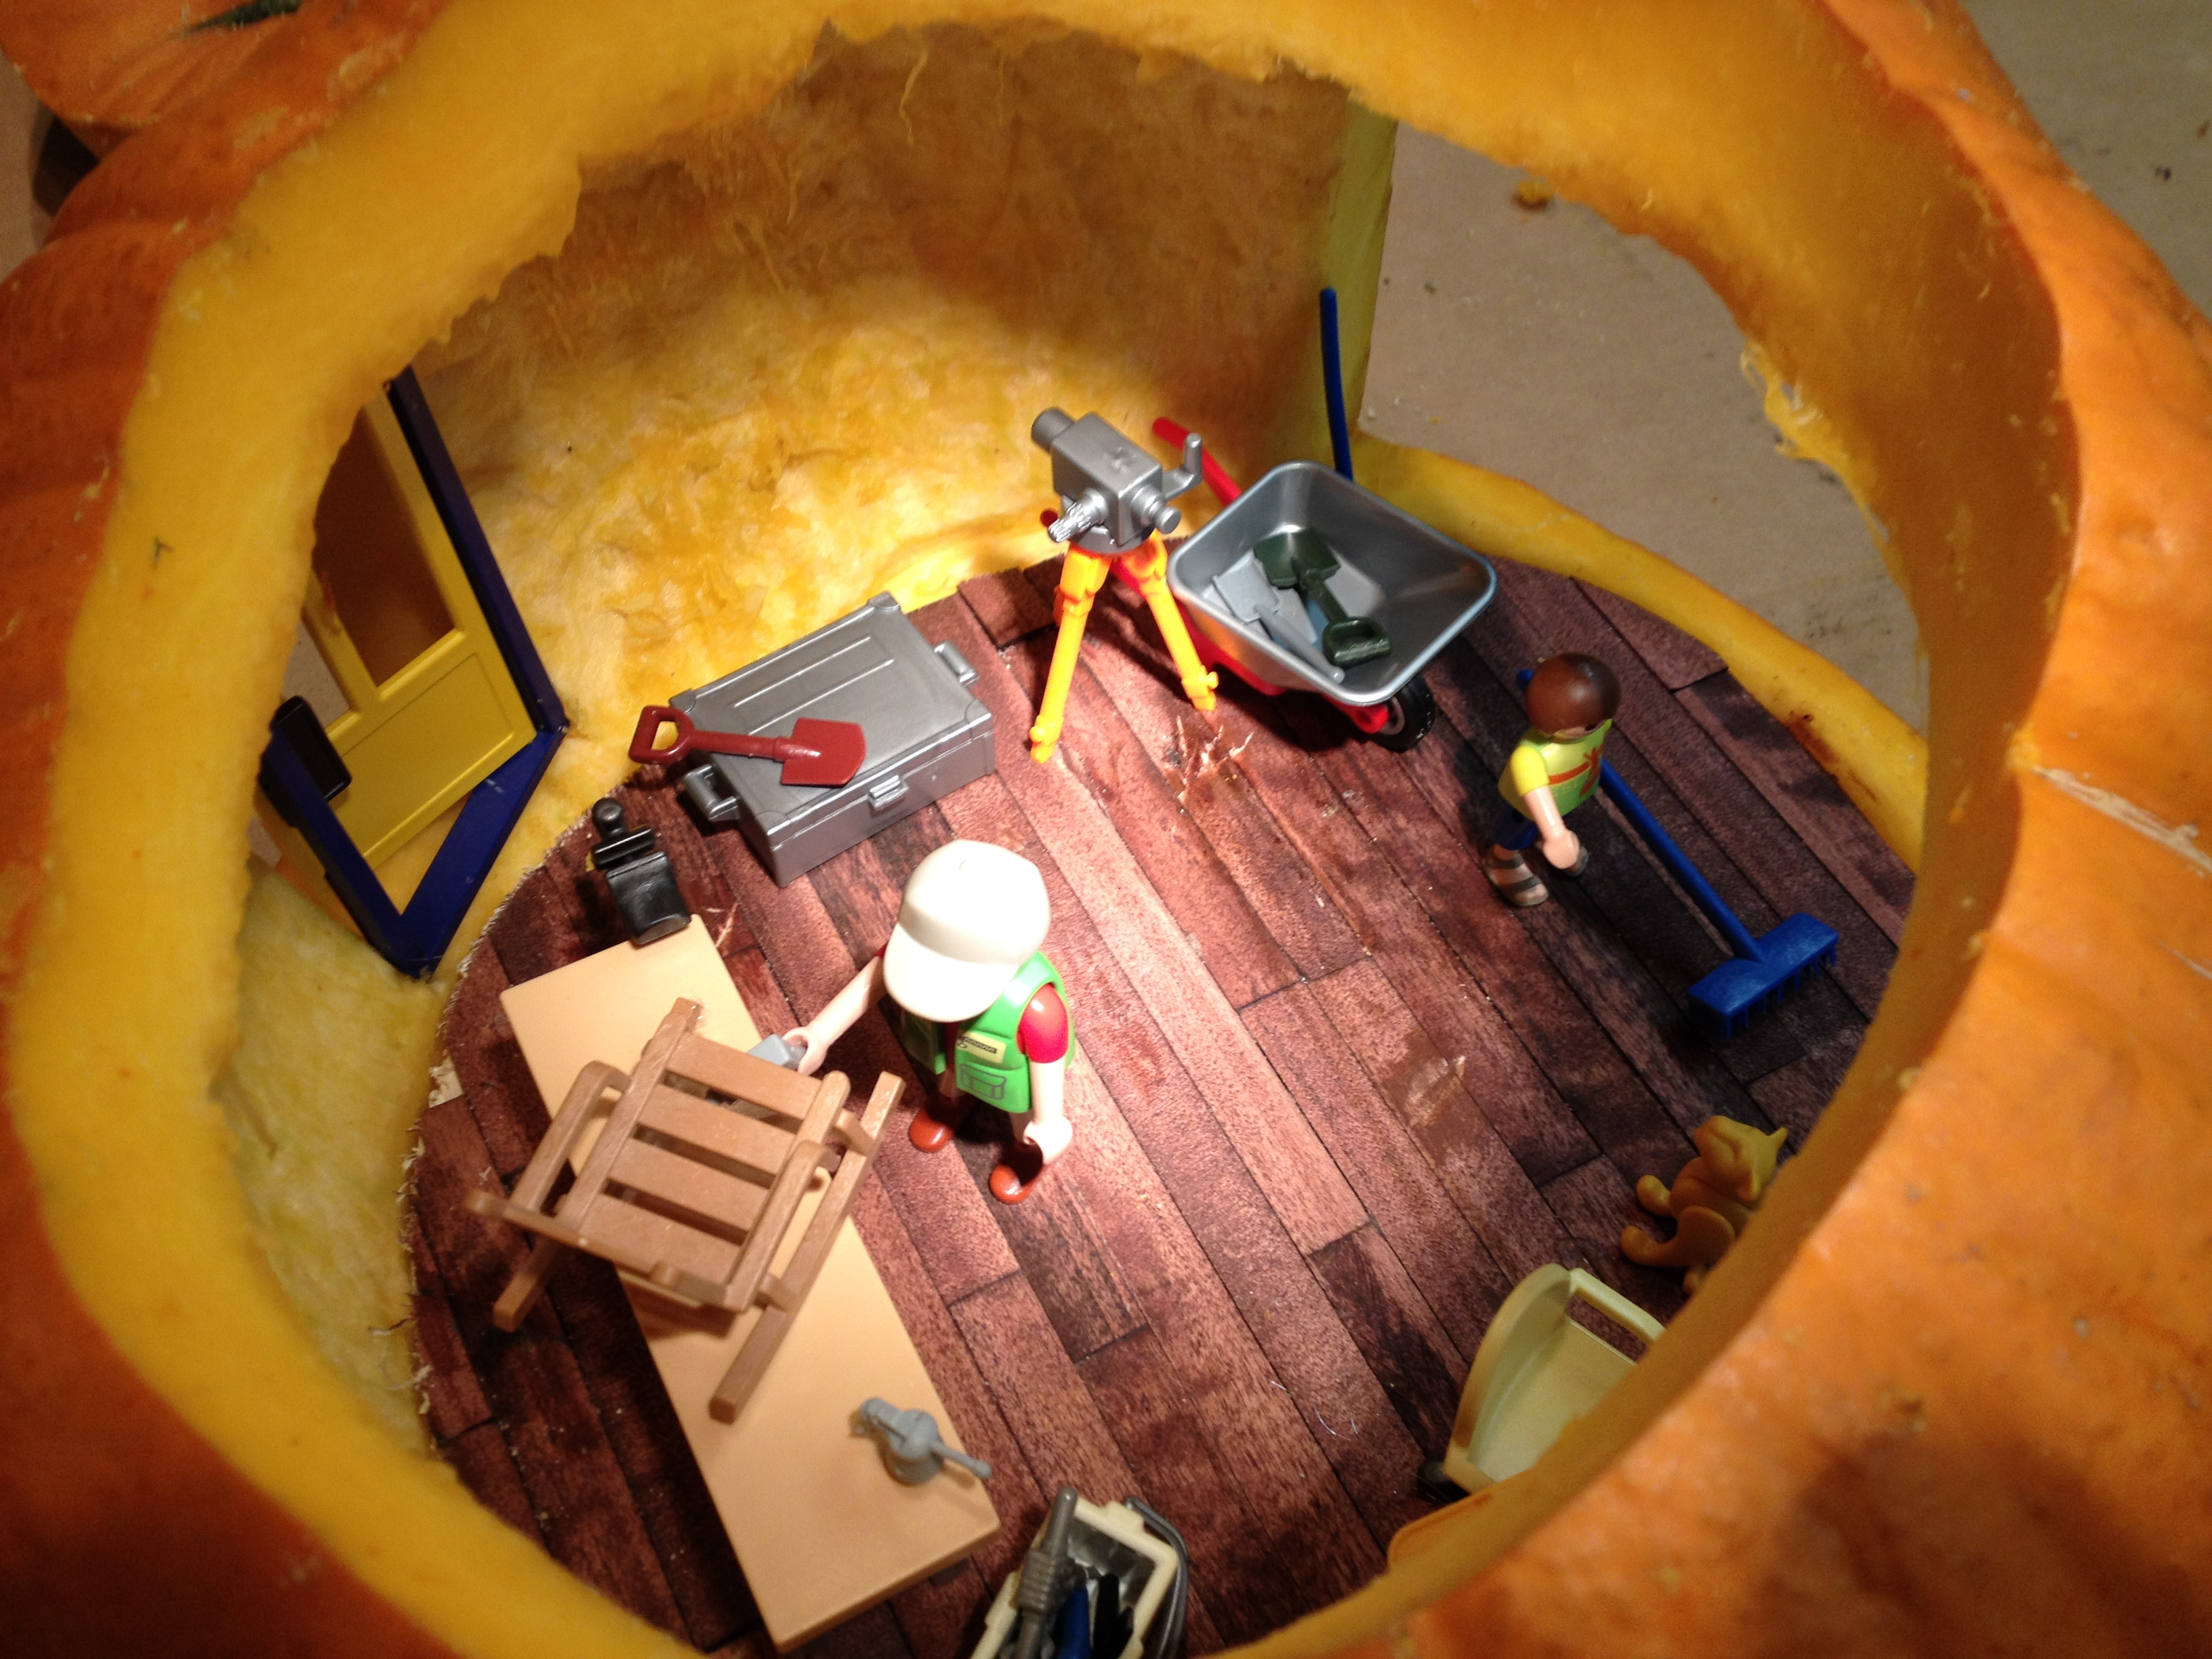 Picture of Carve the Pumpkin and Finish